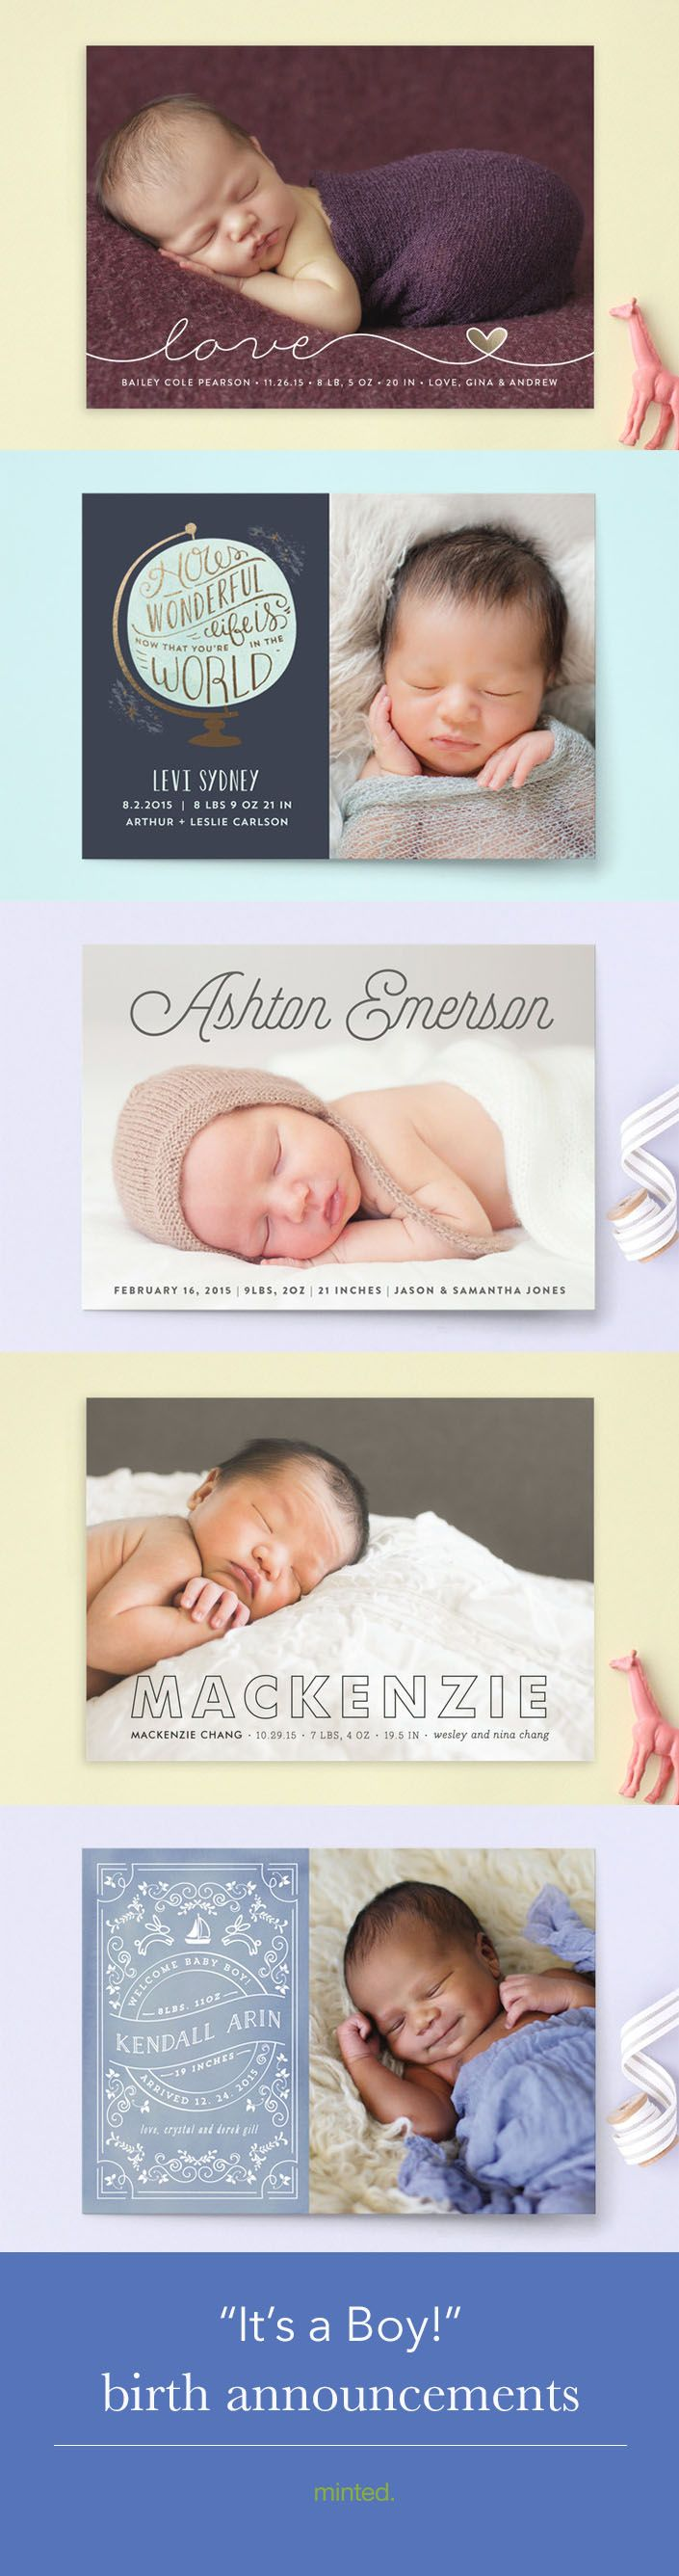 Cached Boy birth announcements no photo